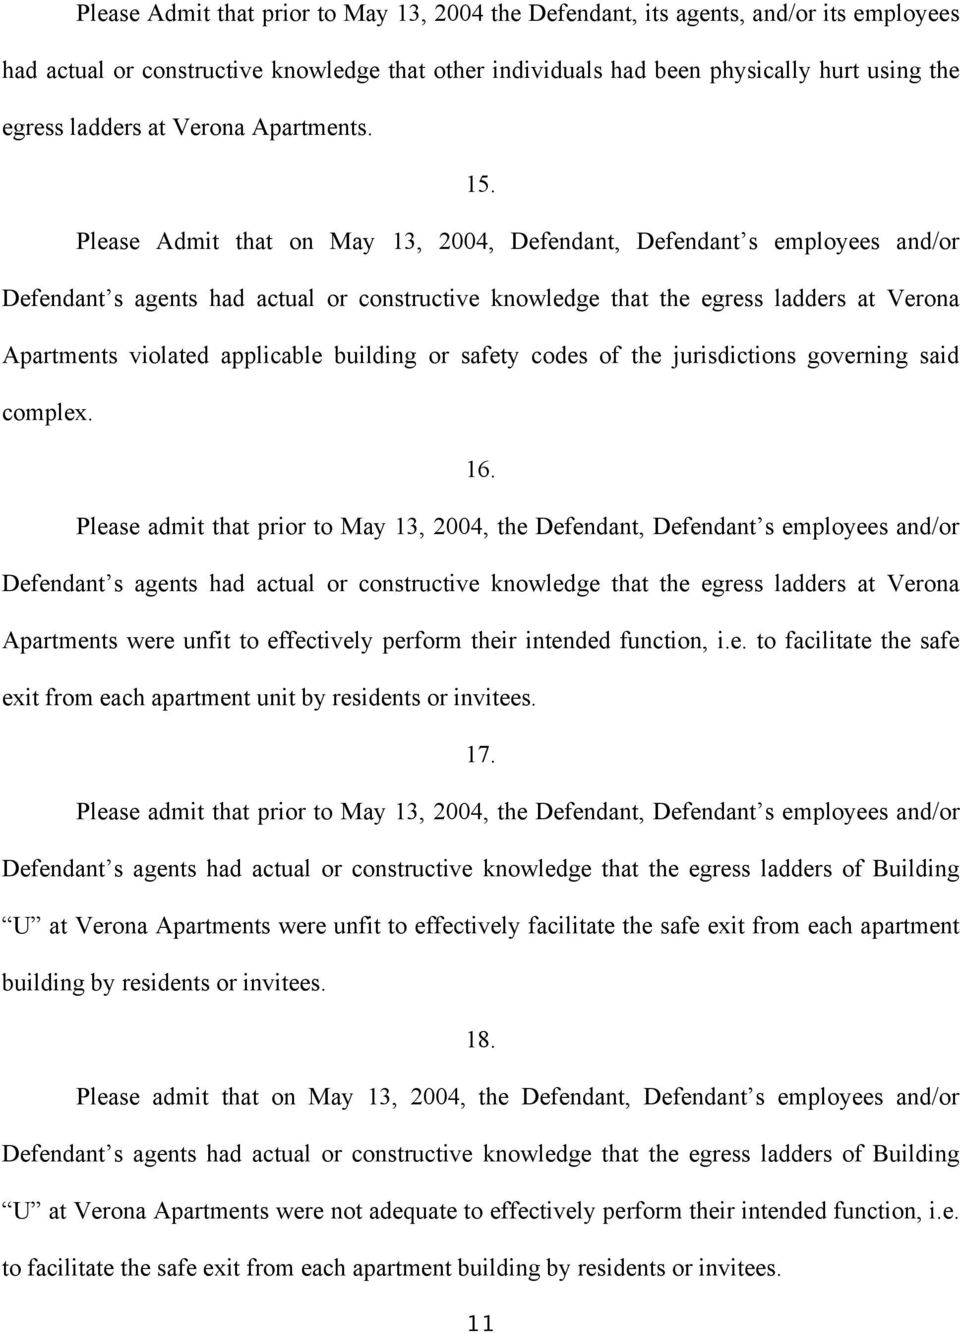 Please Admit that on May 13, 2004, Defendant, Defendant s employees and/or Defendant s agents had actual or constructive knowledge that the egress ladders at Verona Apartments violated applicable